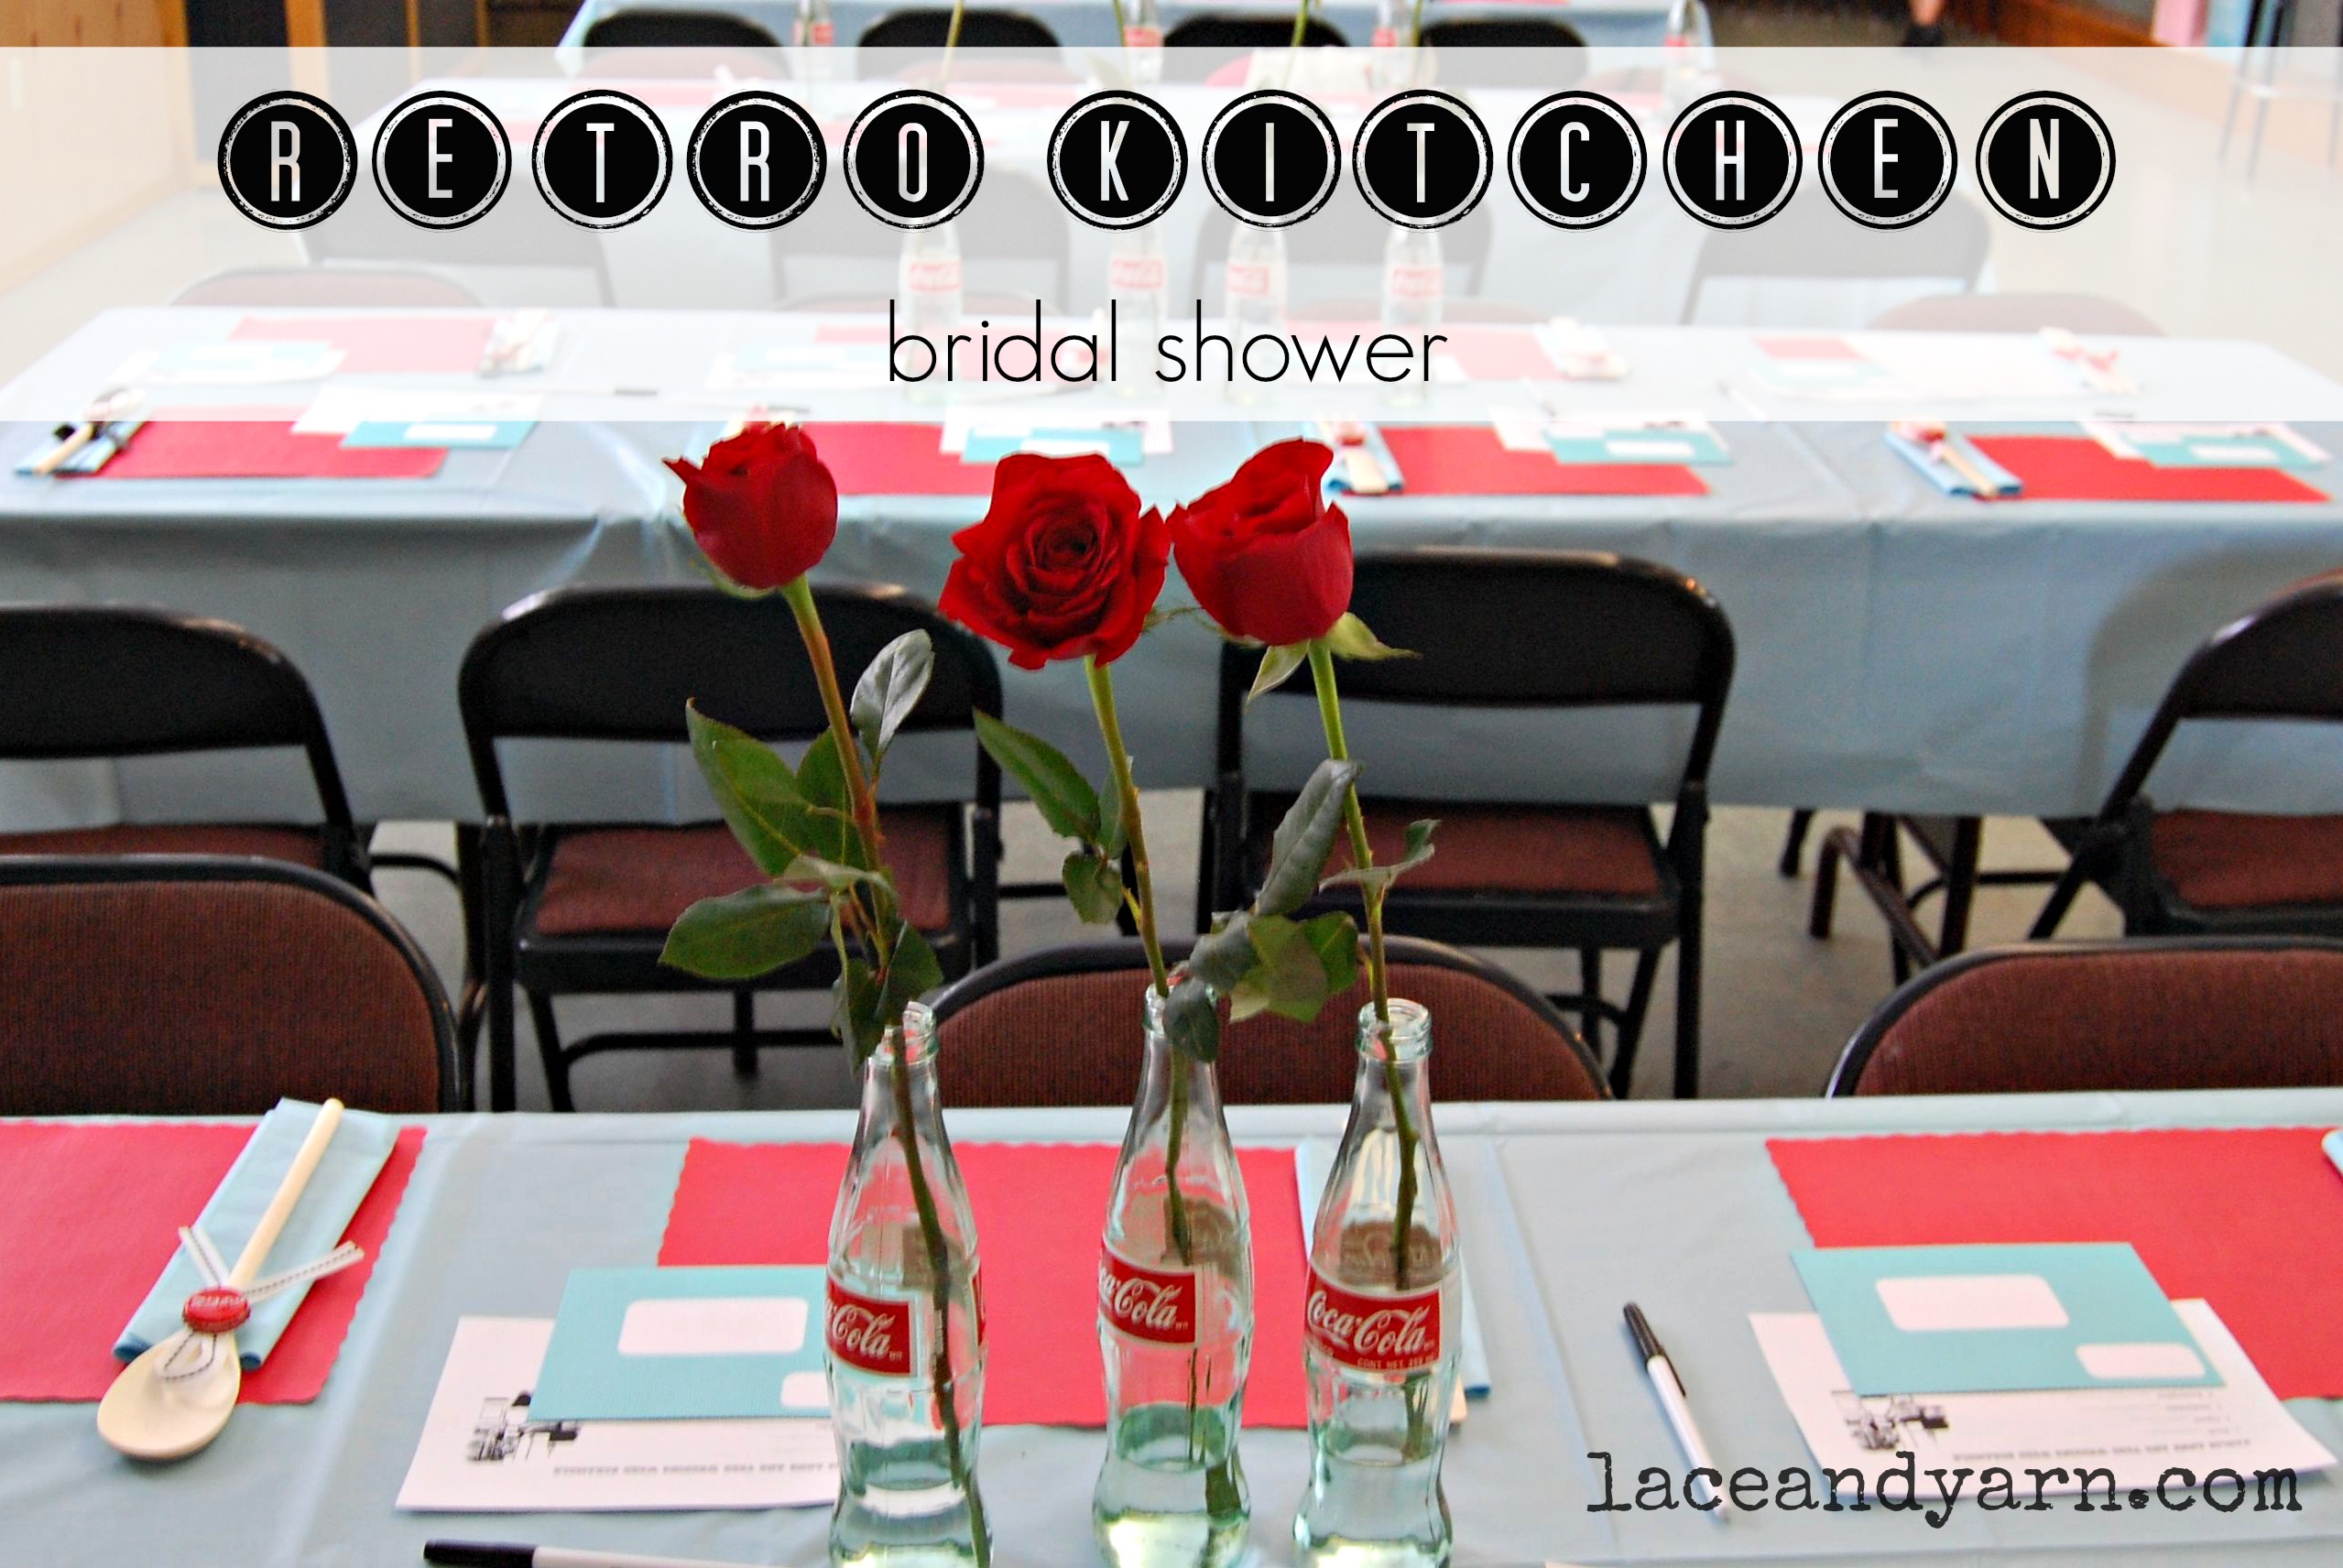 A Retro Kitchen Bridal Shower by laceandyarn.com